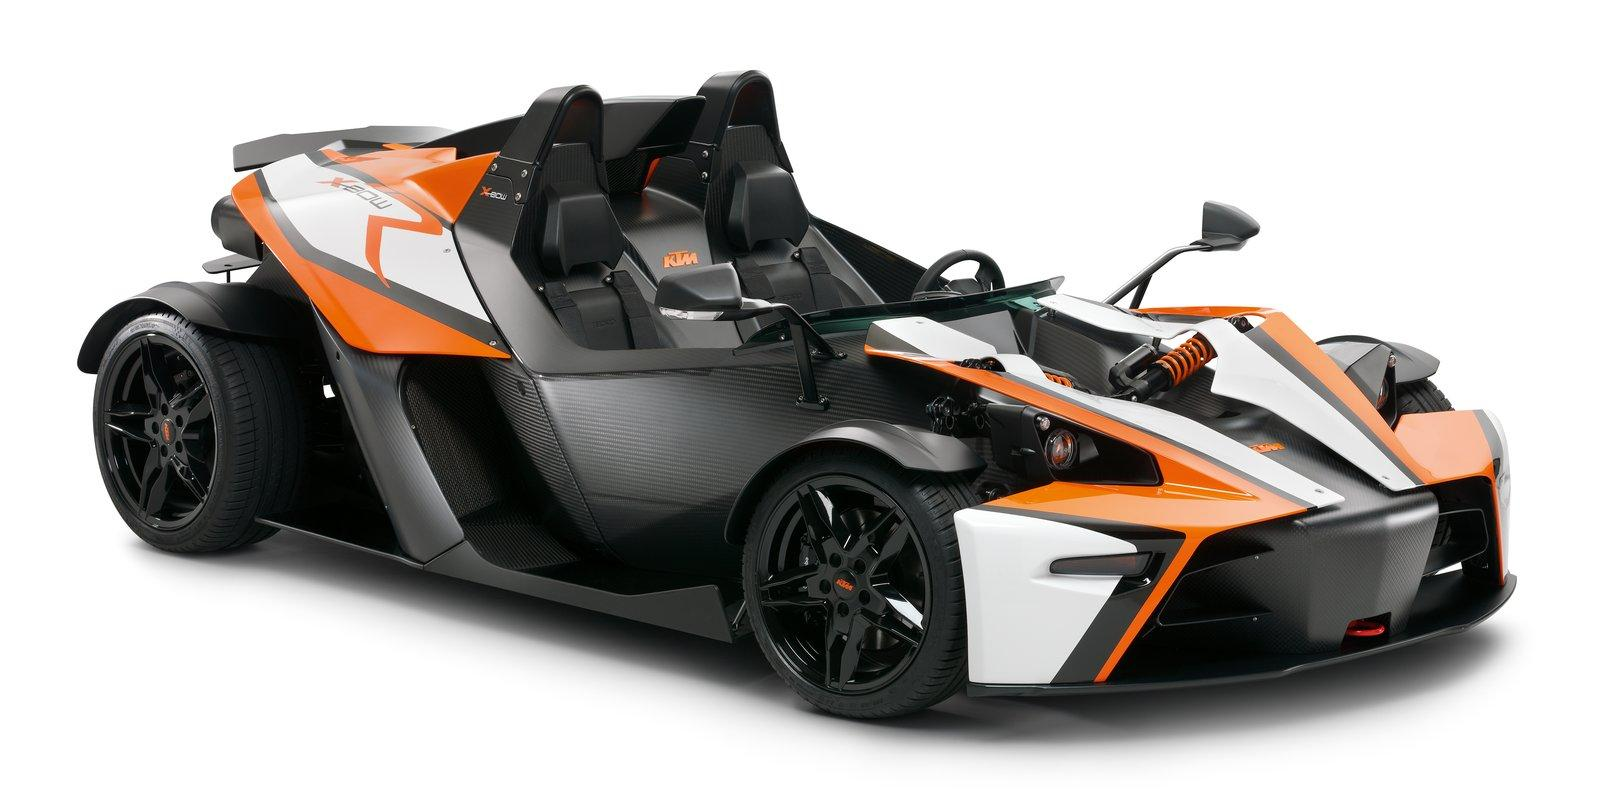 2011 ktm x bow r photo gallery autoblog. Black Bedroom Furniture Sets. Home Design Ideas